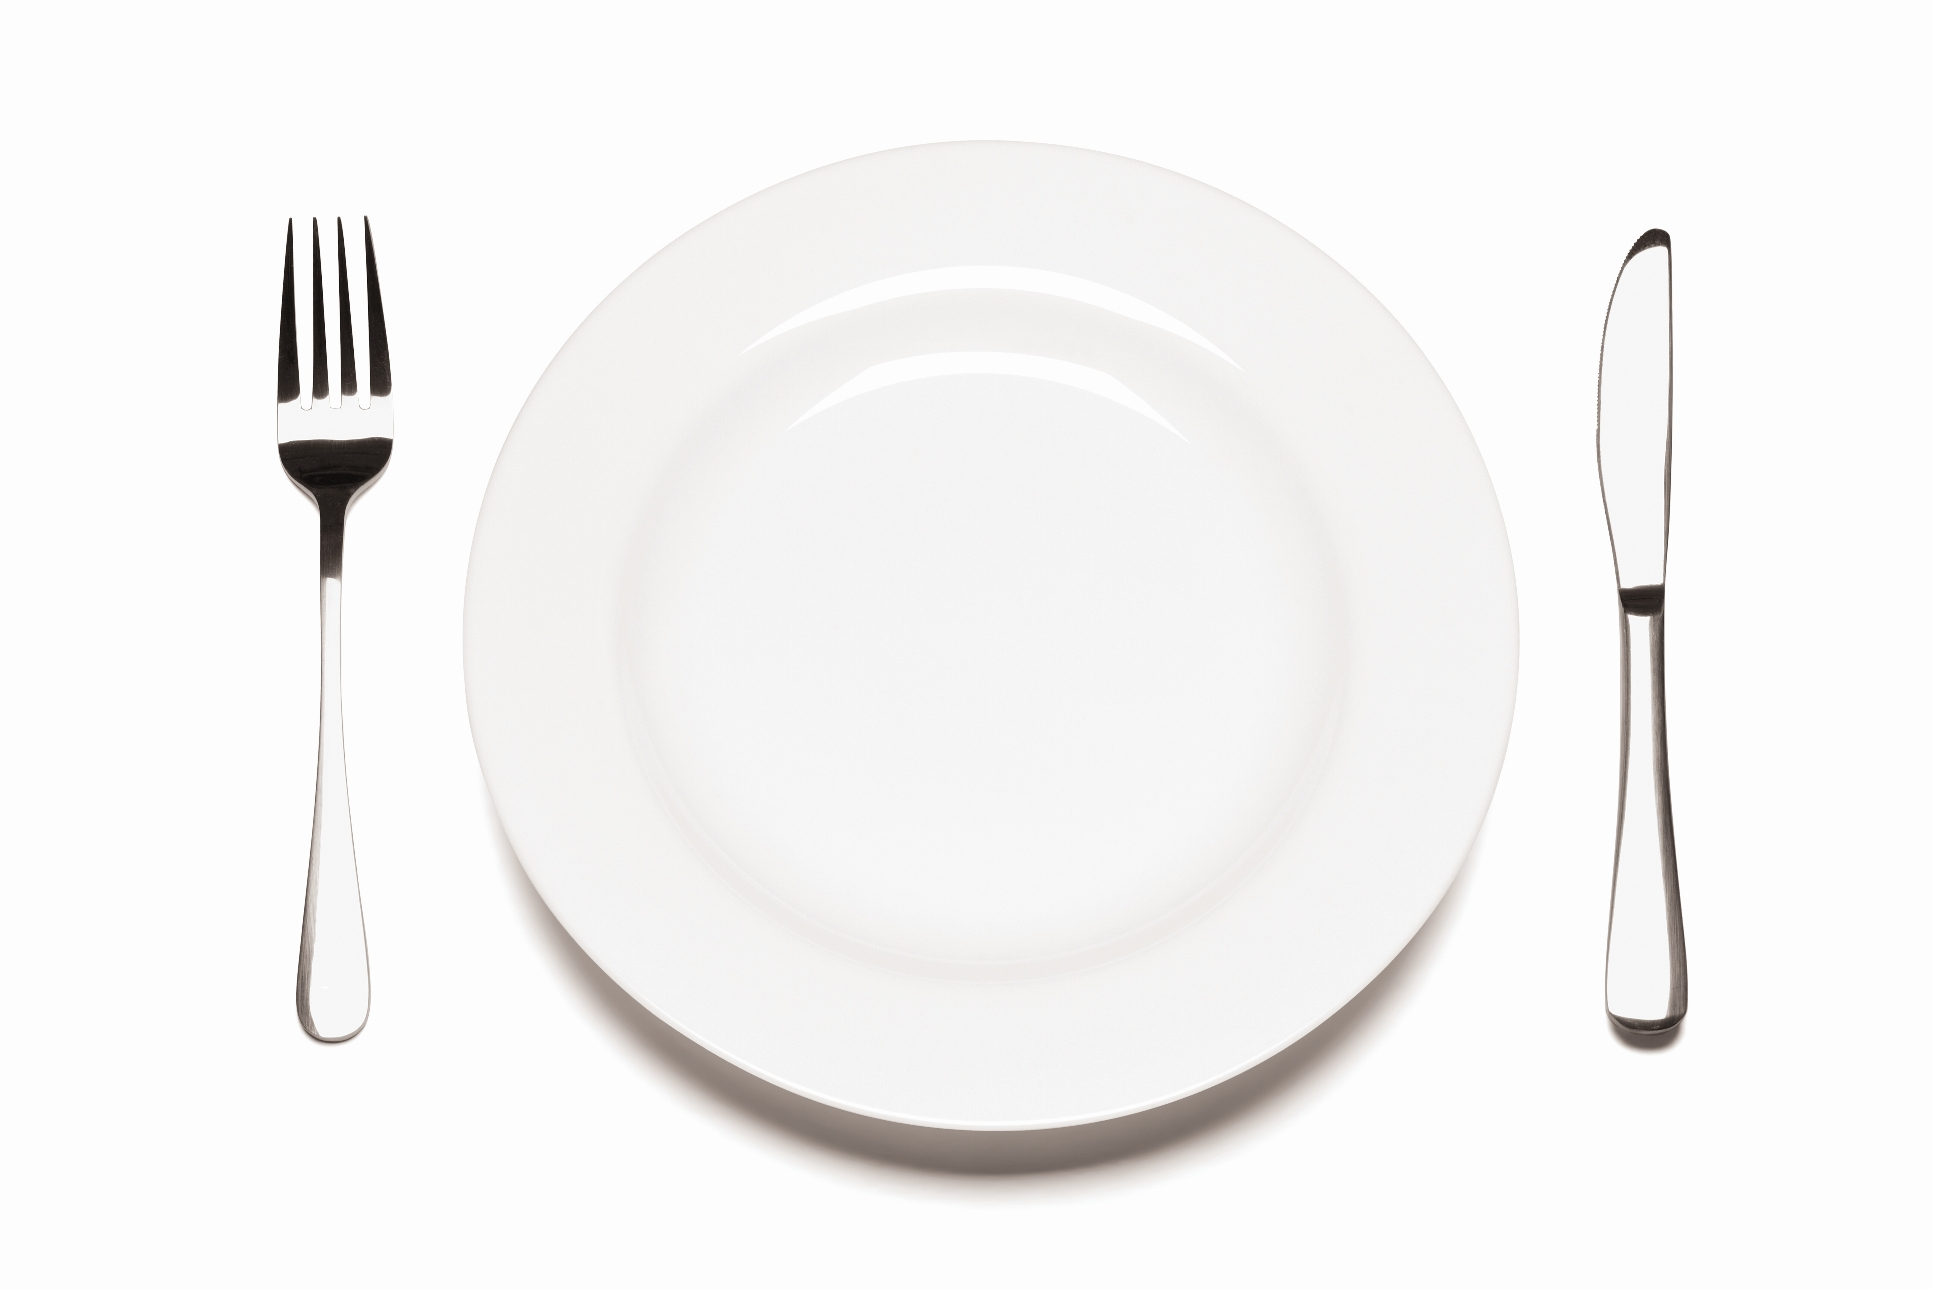 Free Fork And Knife Download Free Clip Art Free Clip